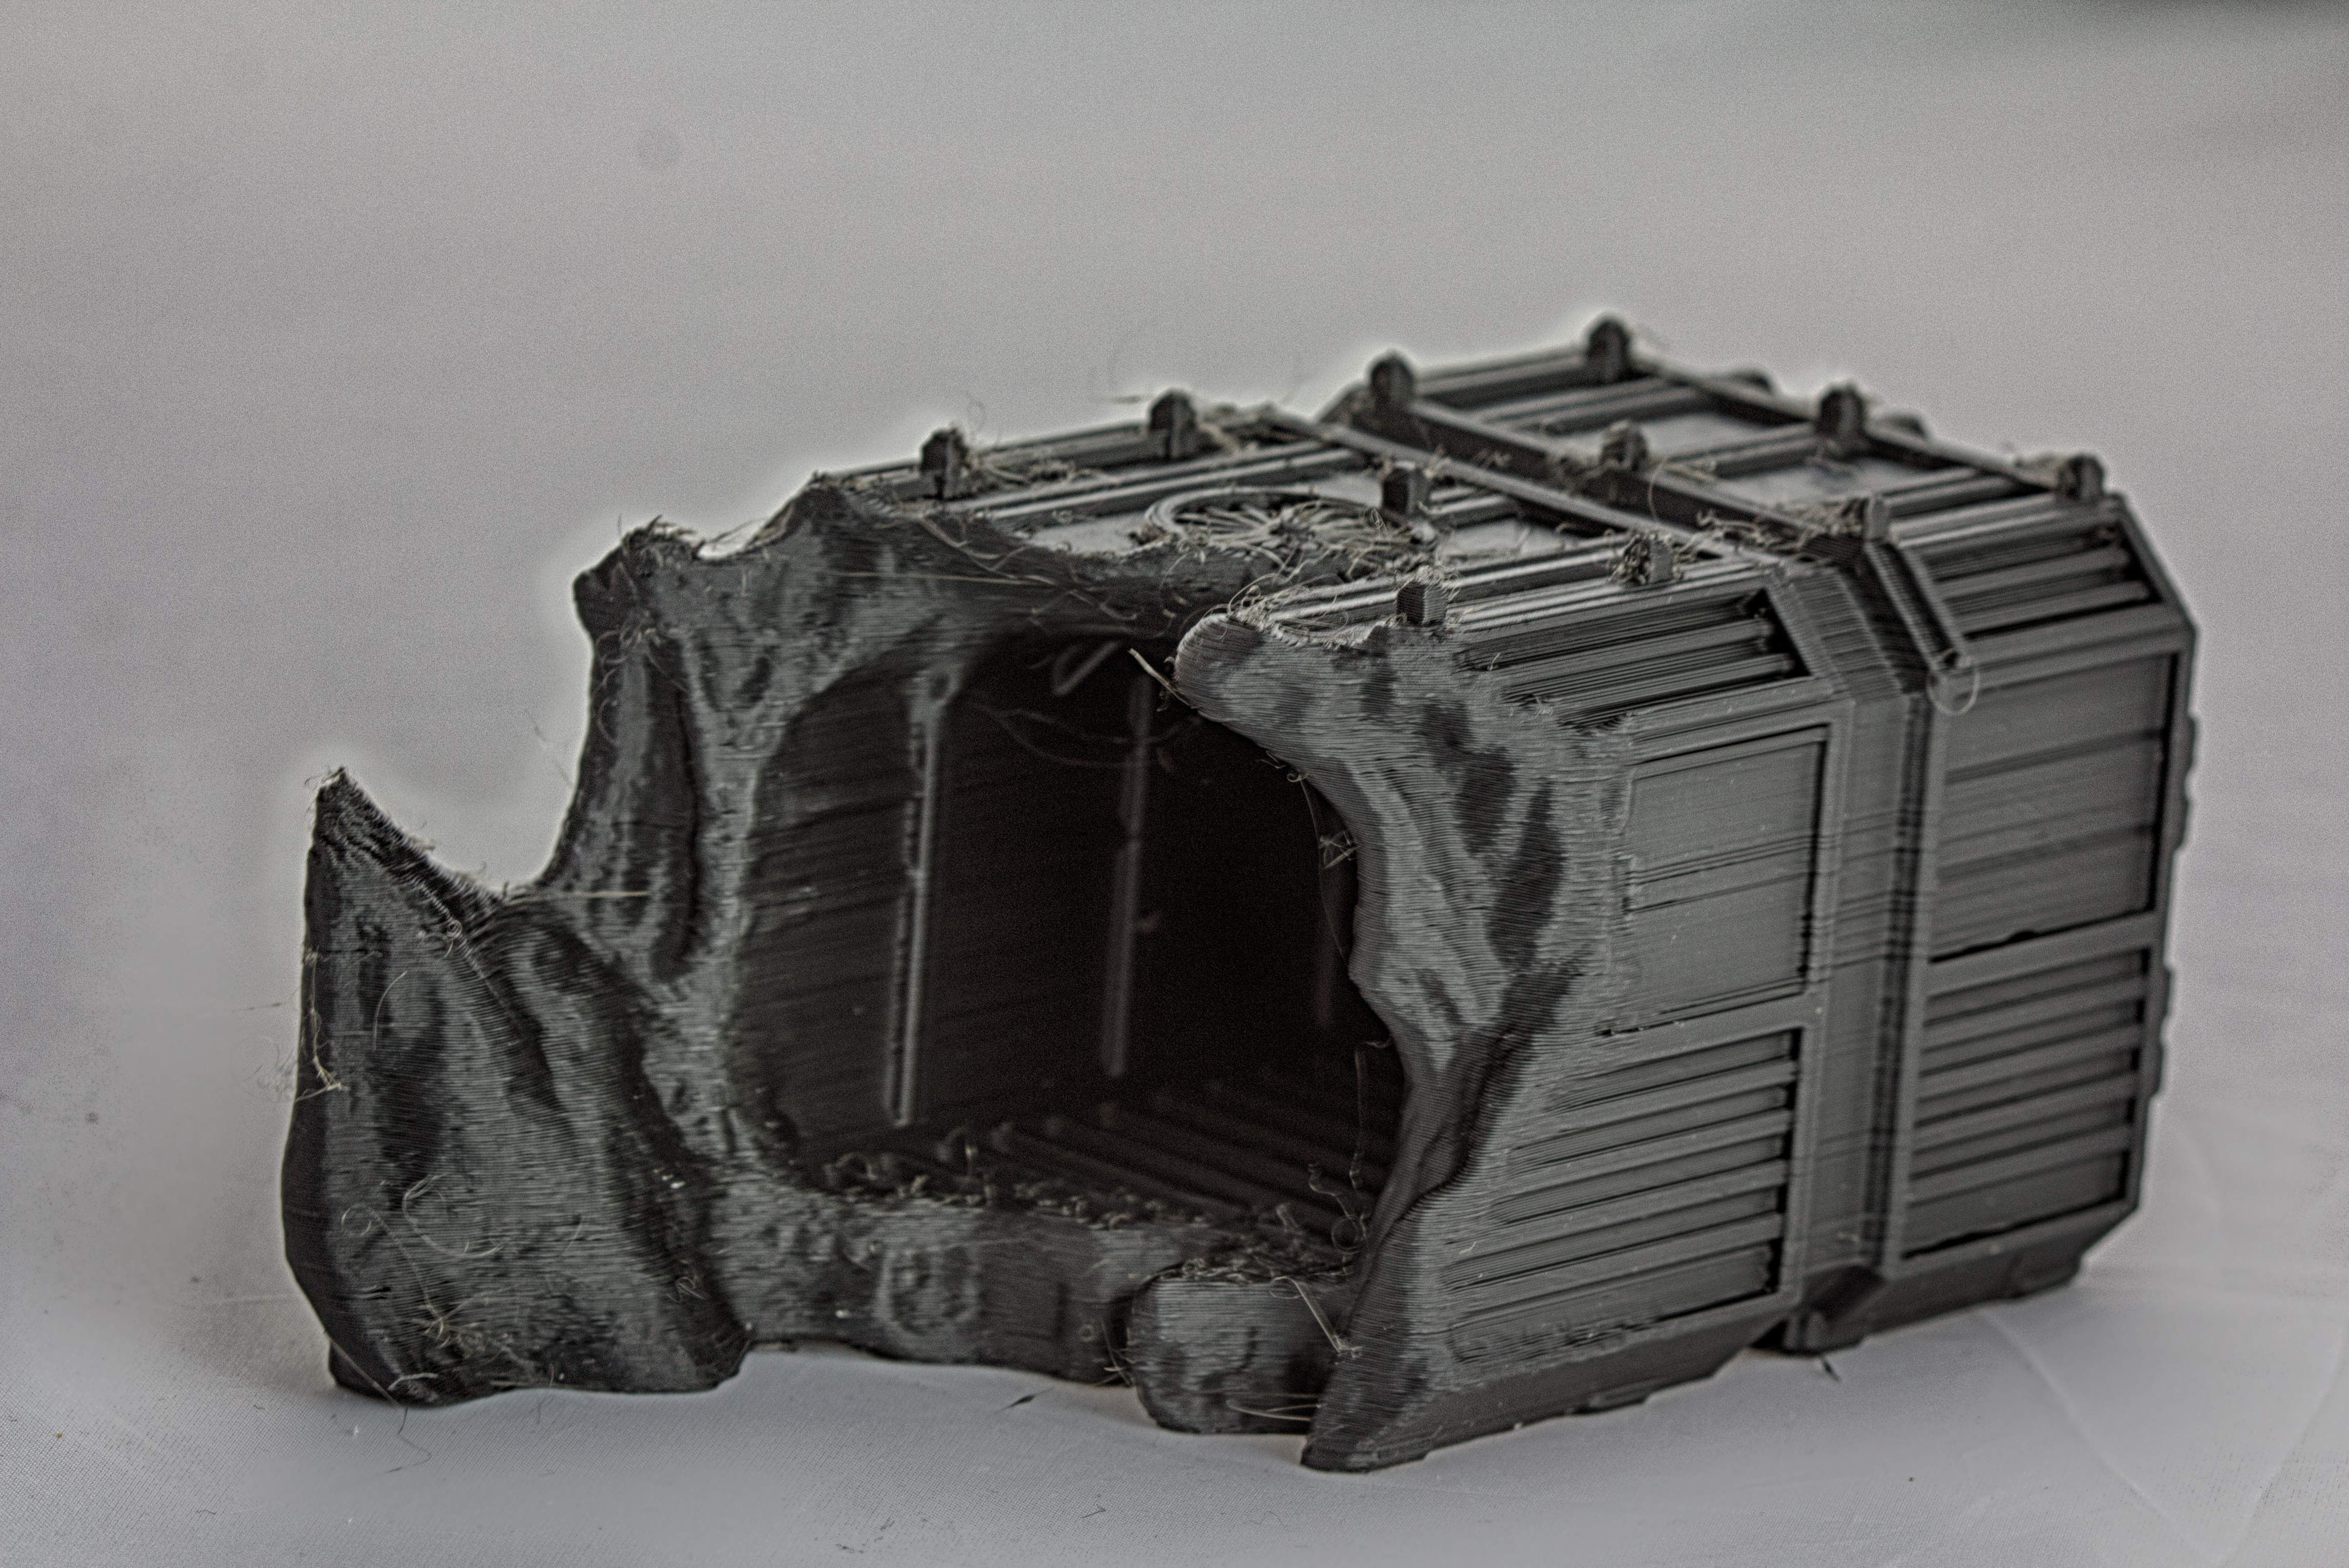 Wargame terrain - printed CR10s (10 of 10)